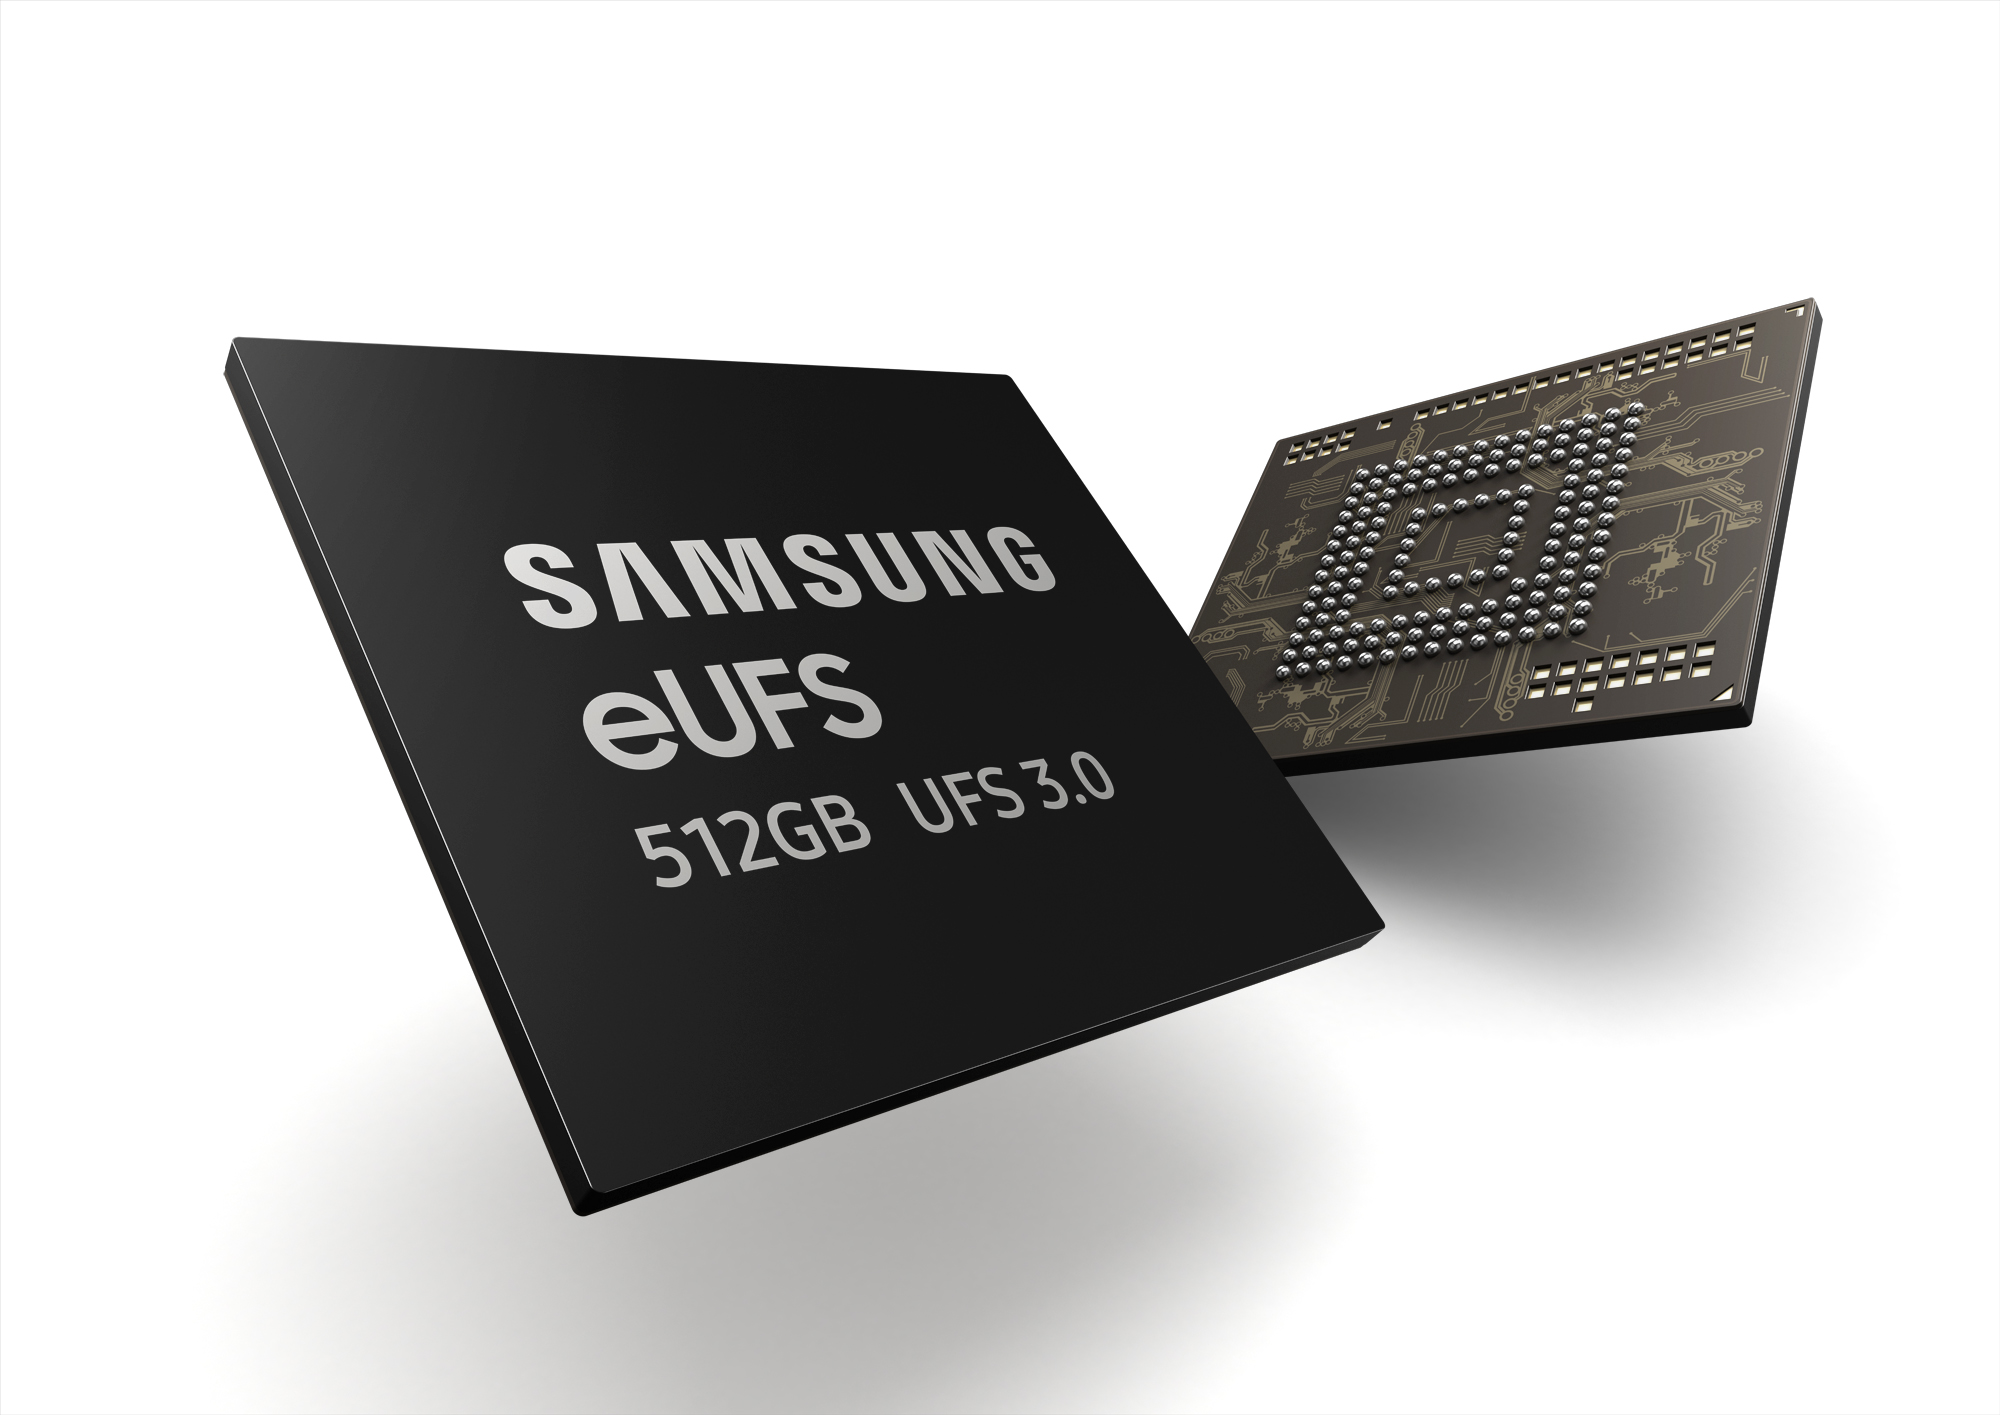 Samsung doubling current phone storage speed with eUFS 3.0, now in production